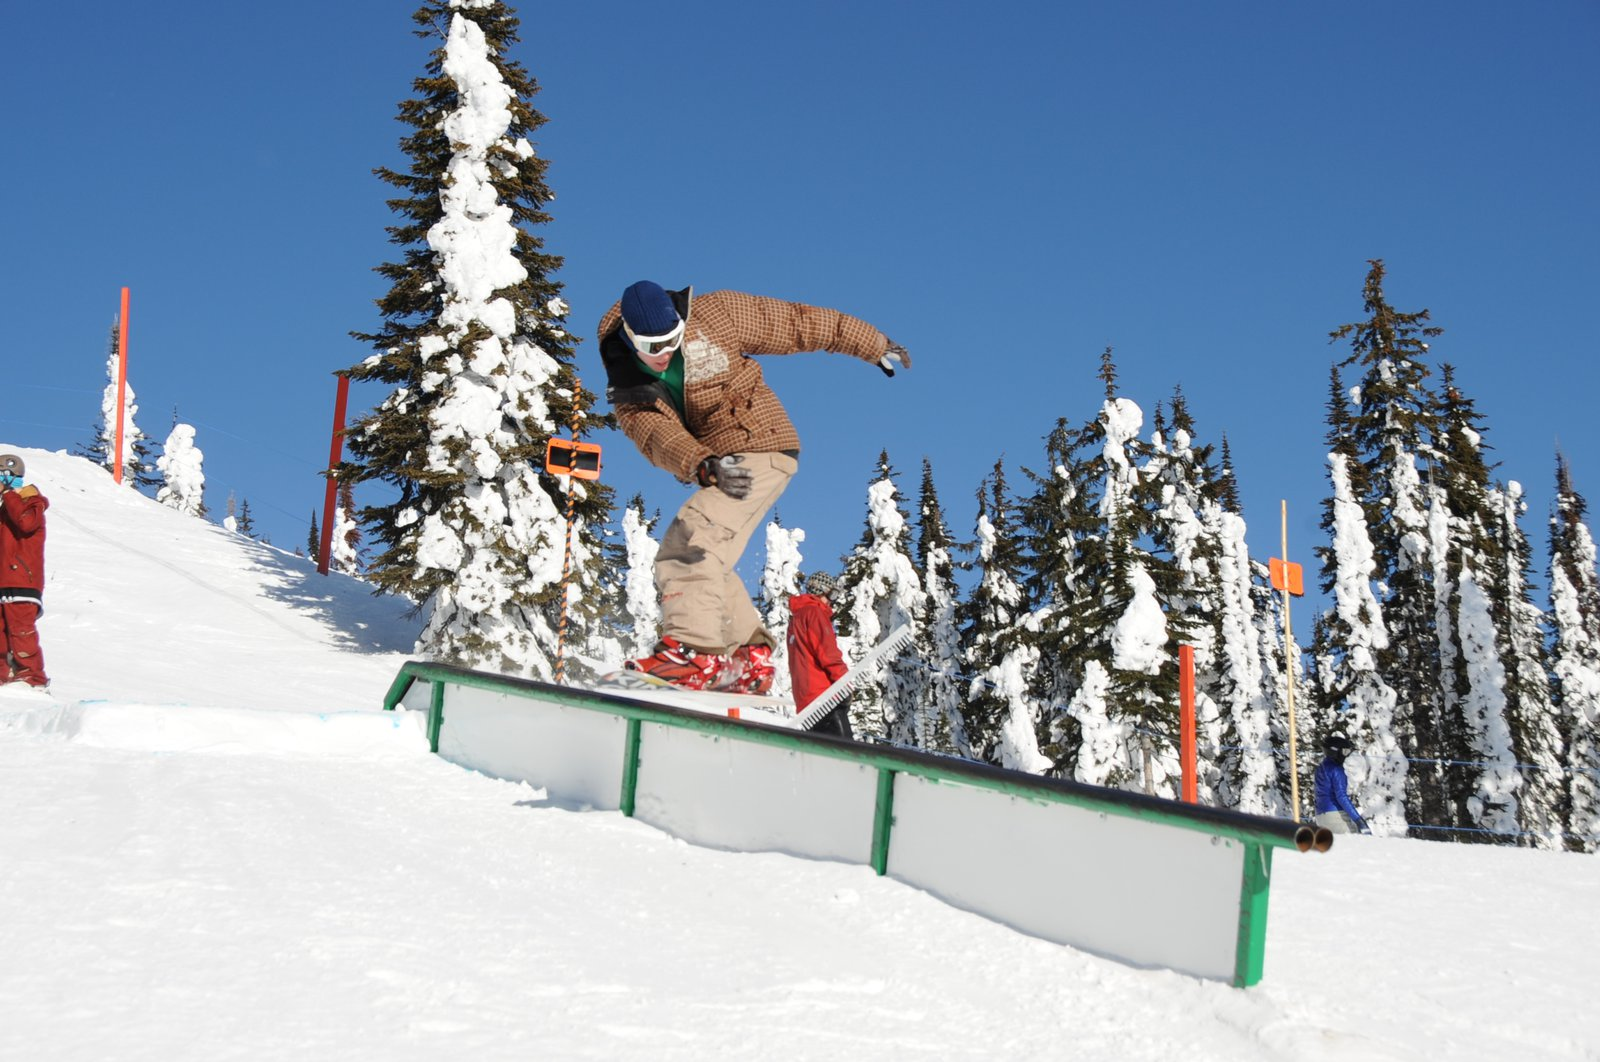 Feature #1 snowboard